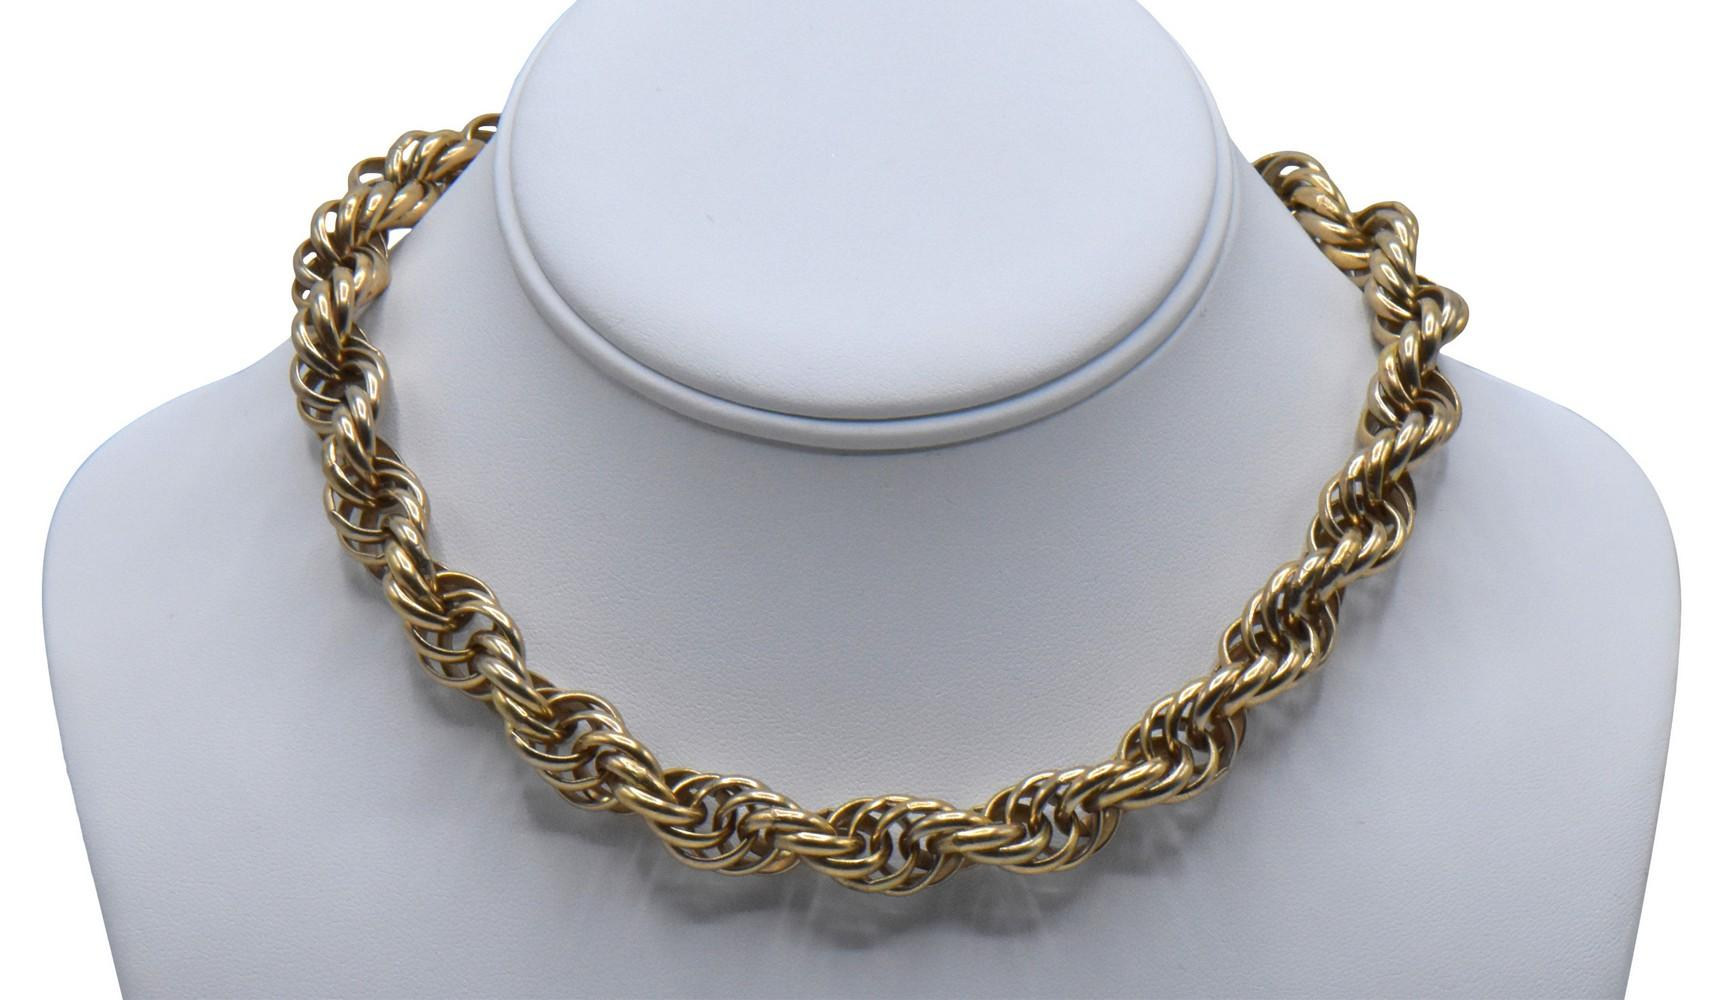 10K Yellow Gold Necklace